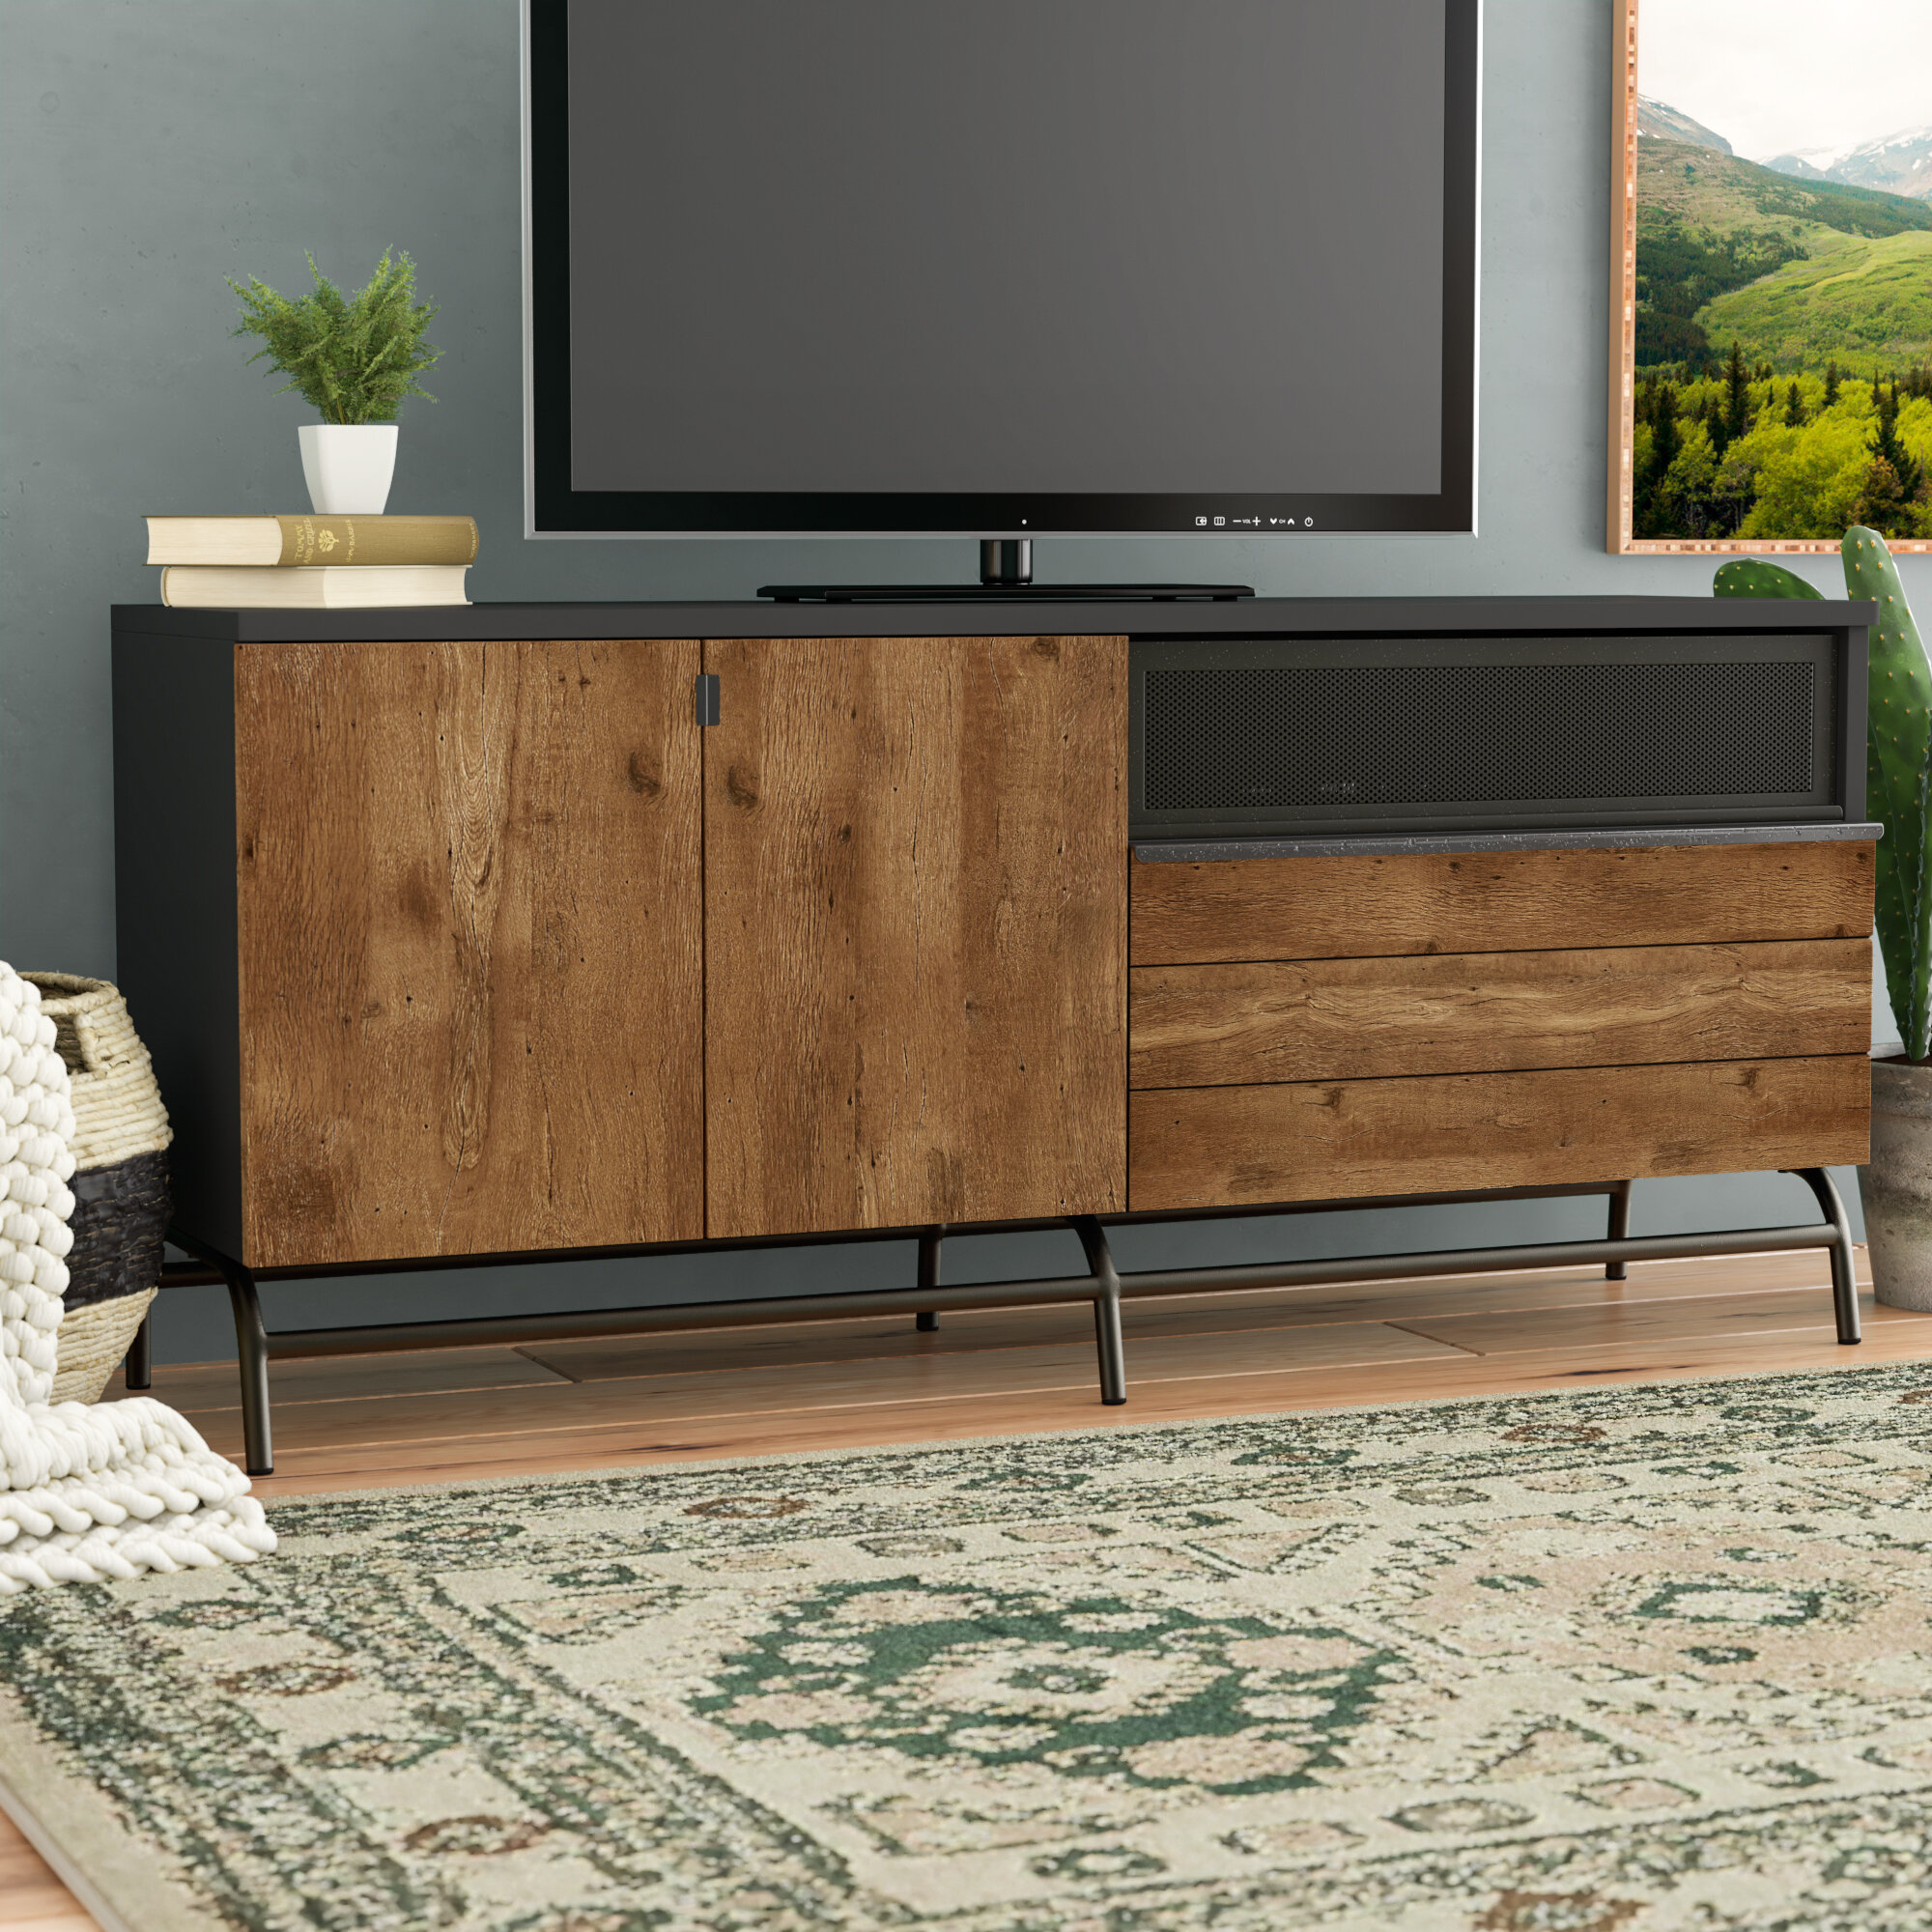 "Credenza Tv Stand You'll Love In 2019 | Wayfair inside Colefax Vintage Tv Stands for Tvs Up to 78"" (Image 12 of 30)"